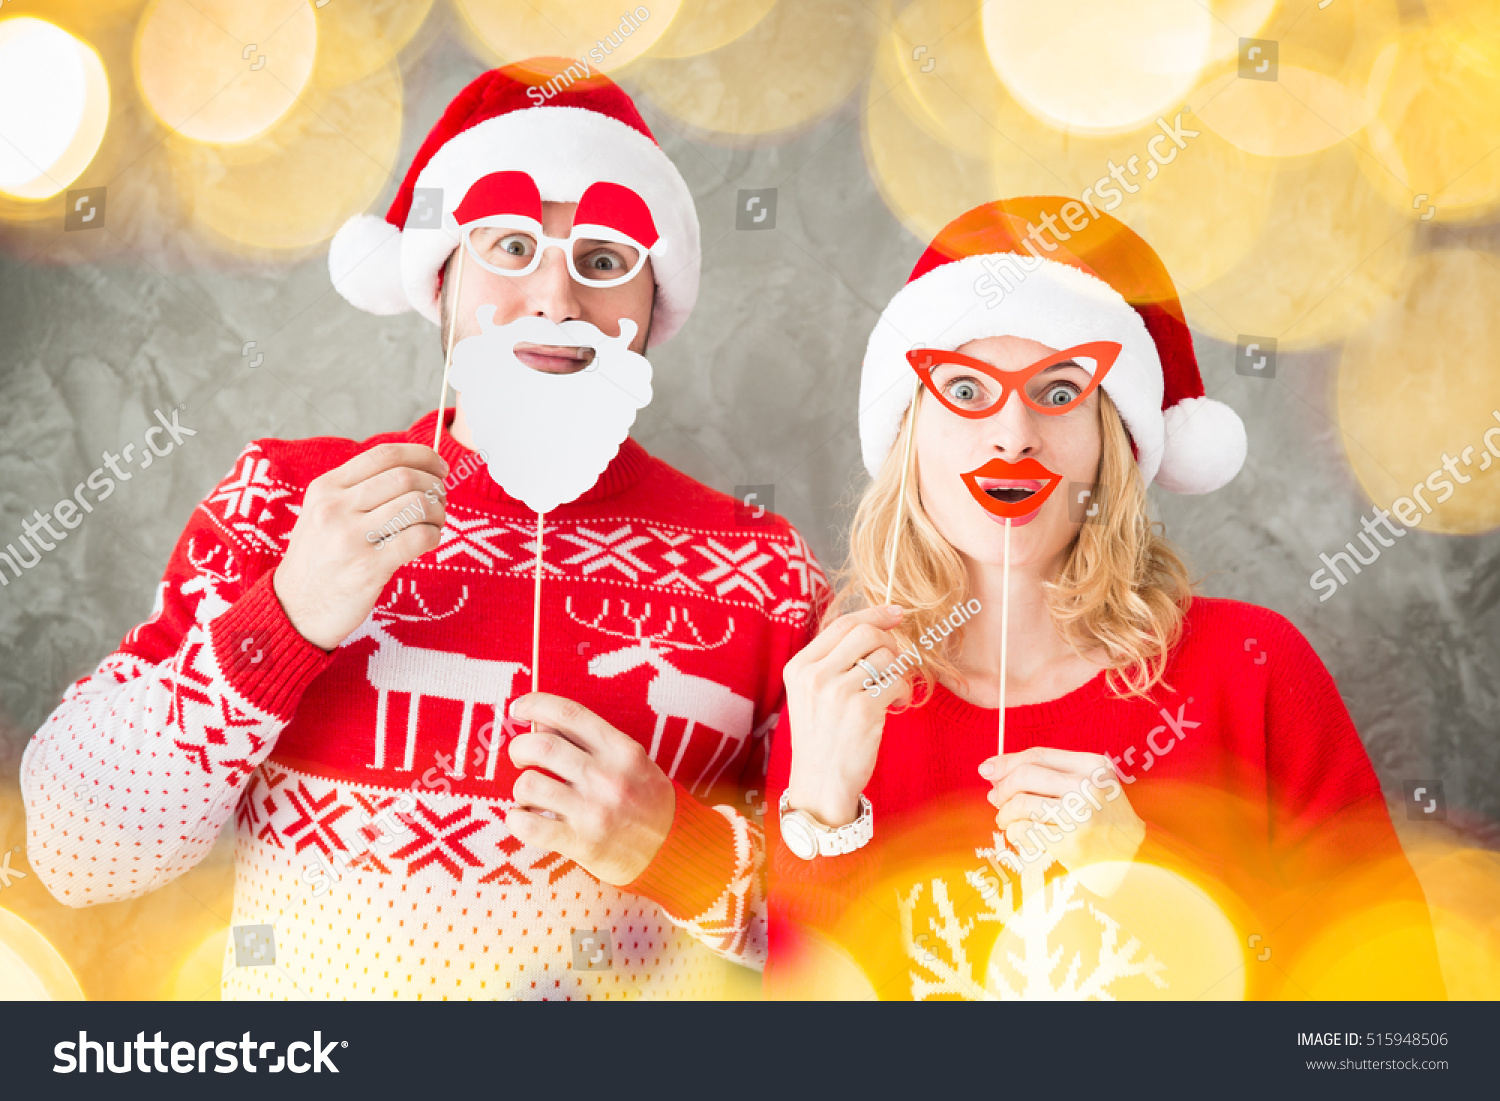 Portrait Of Funny Couple With Christmas Paper Props Man And Woman Having Fun Together